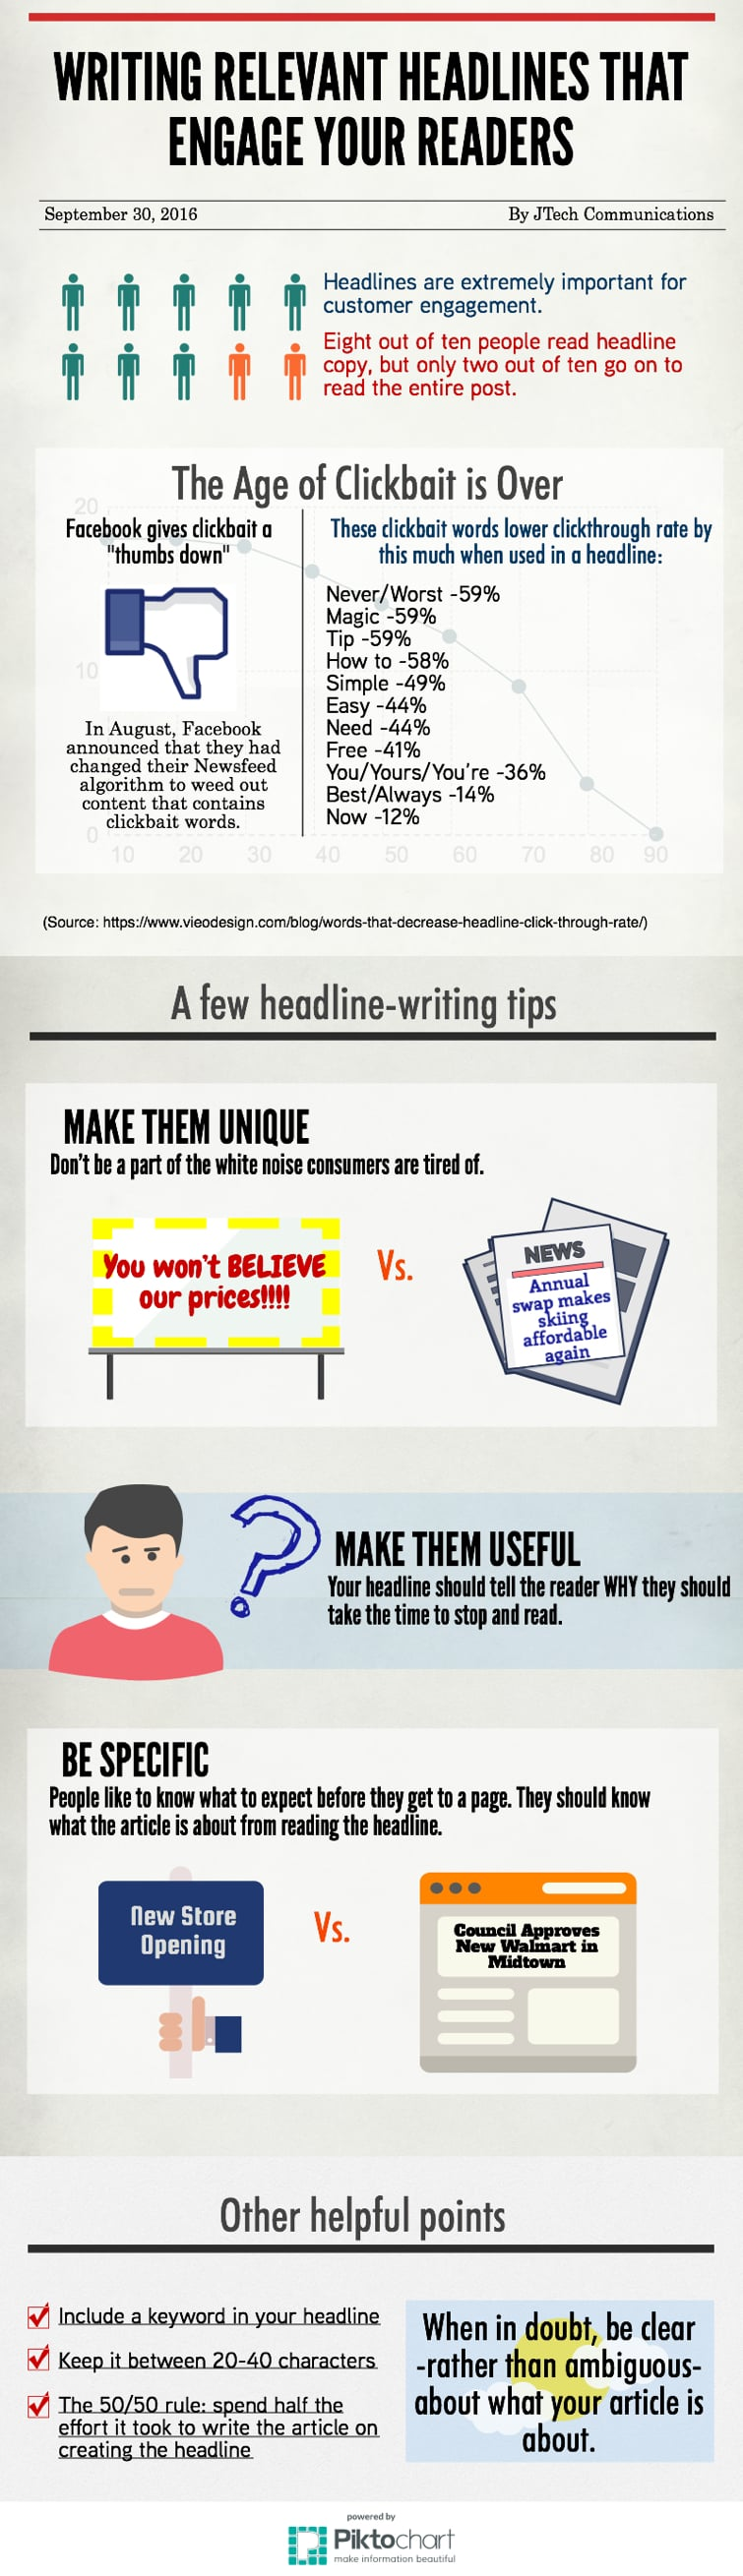 Tips for writing good headlines infographic.